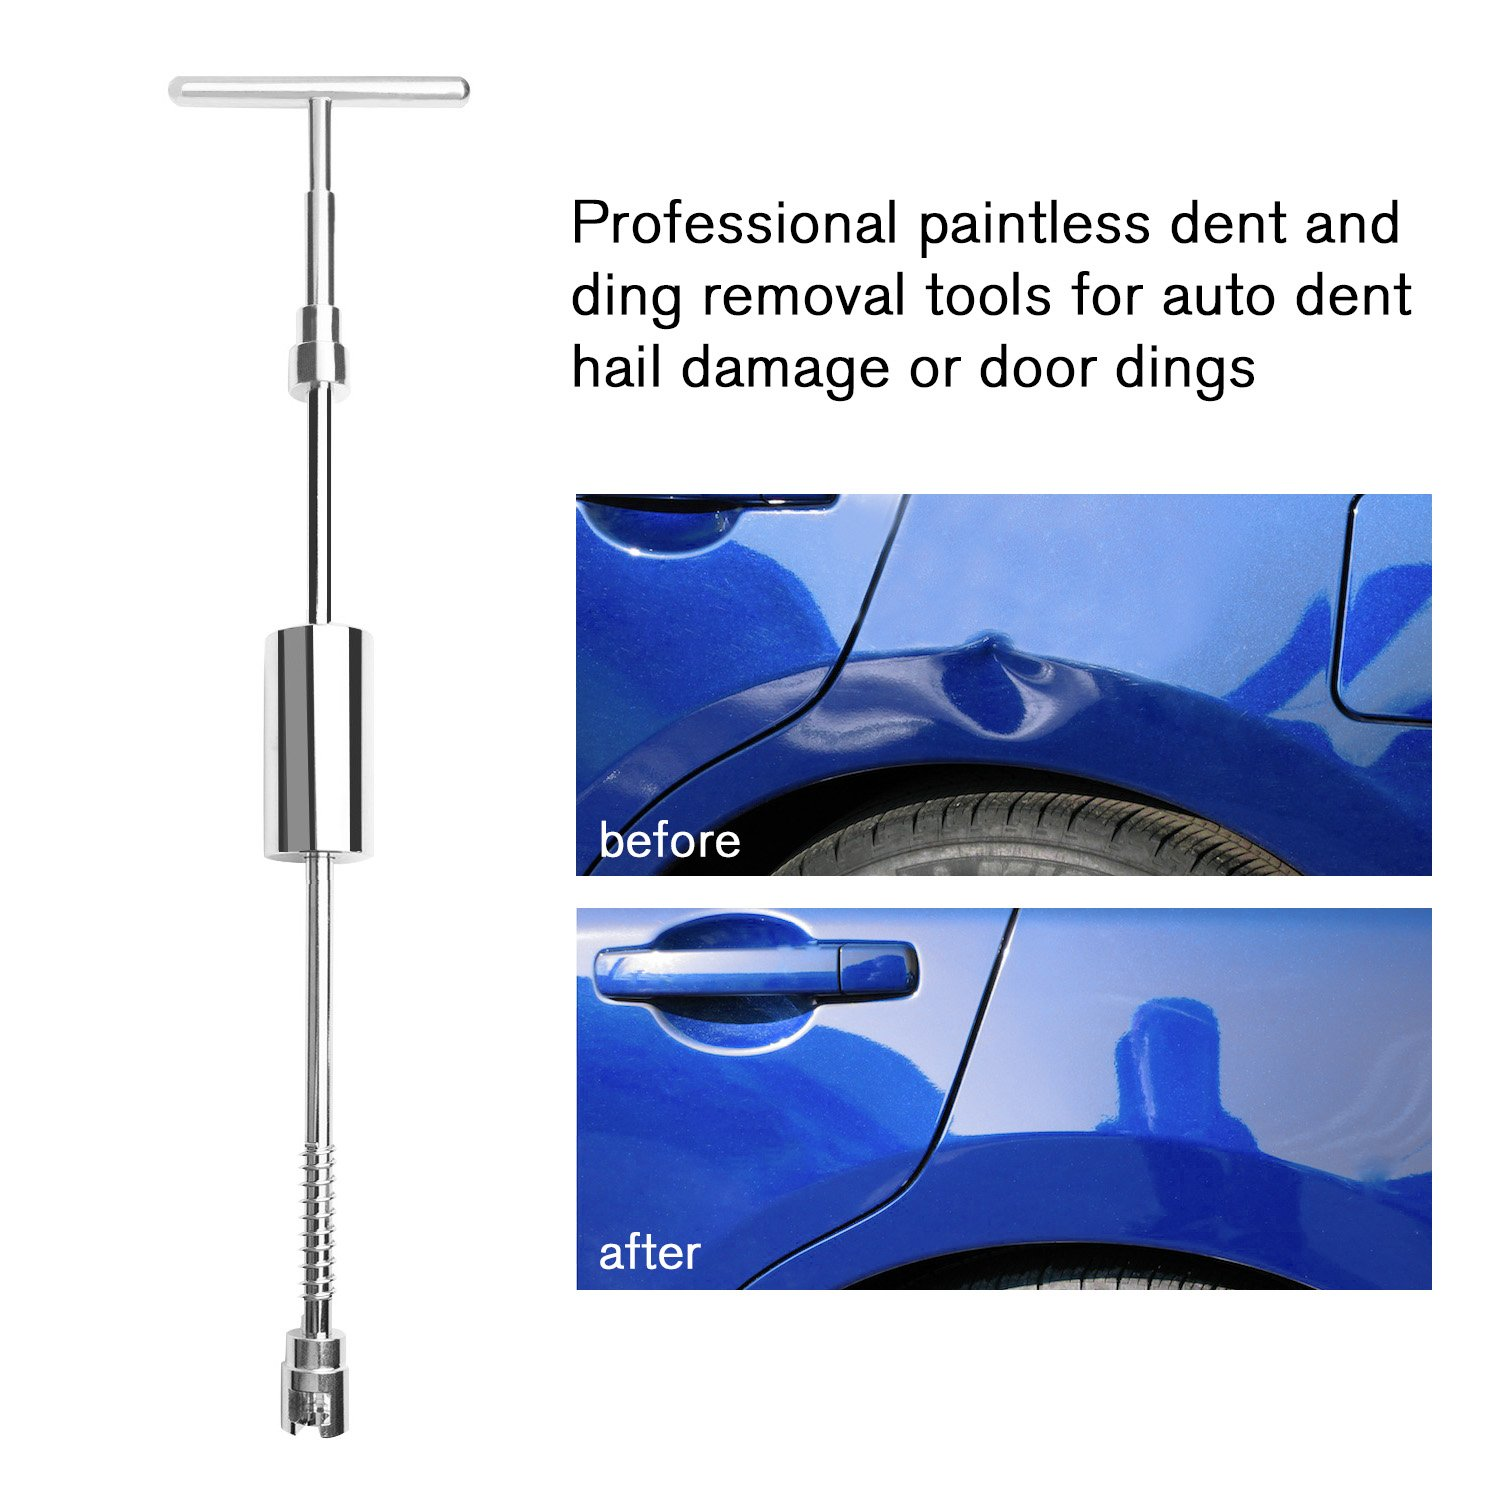 BETIMESYU 32PCS Dent Remover Repair Tools Kits Dent Puller Paintless Slide Hammer with Glue Gun Sticks for Vehicle Car Auto Body Damage Remover by BETIMESYU (Image #8)